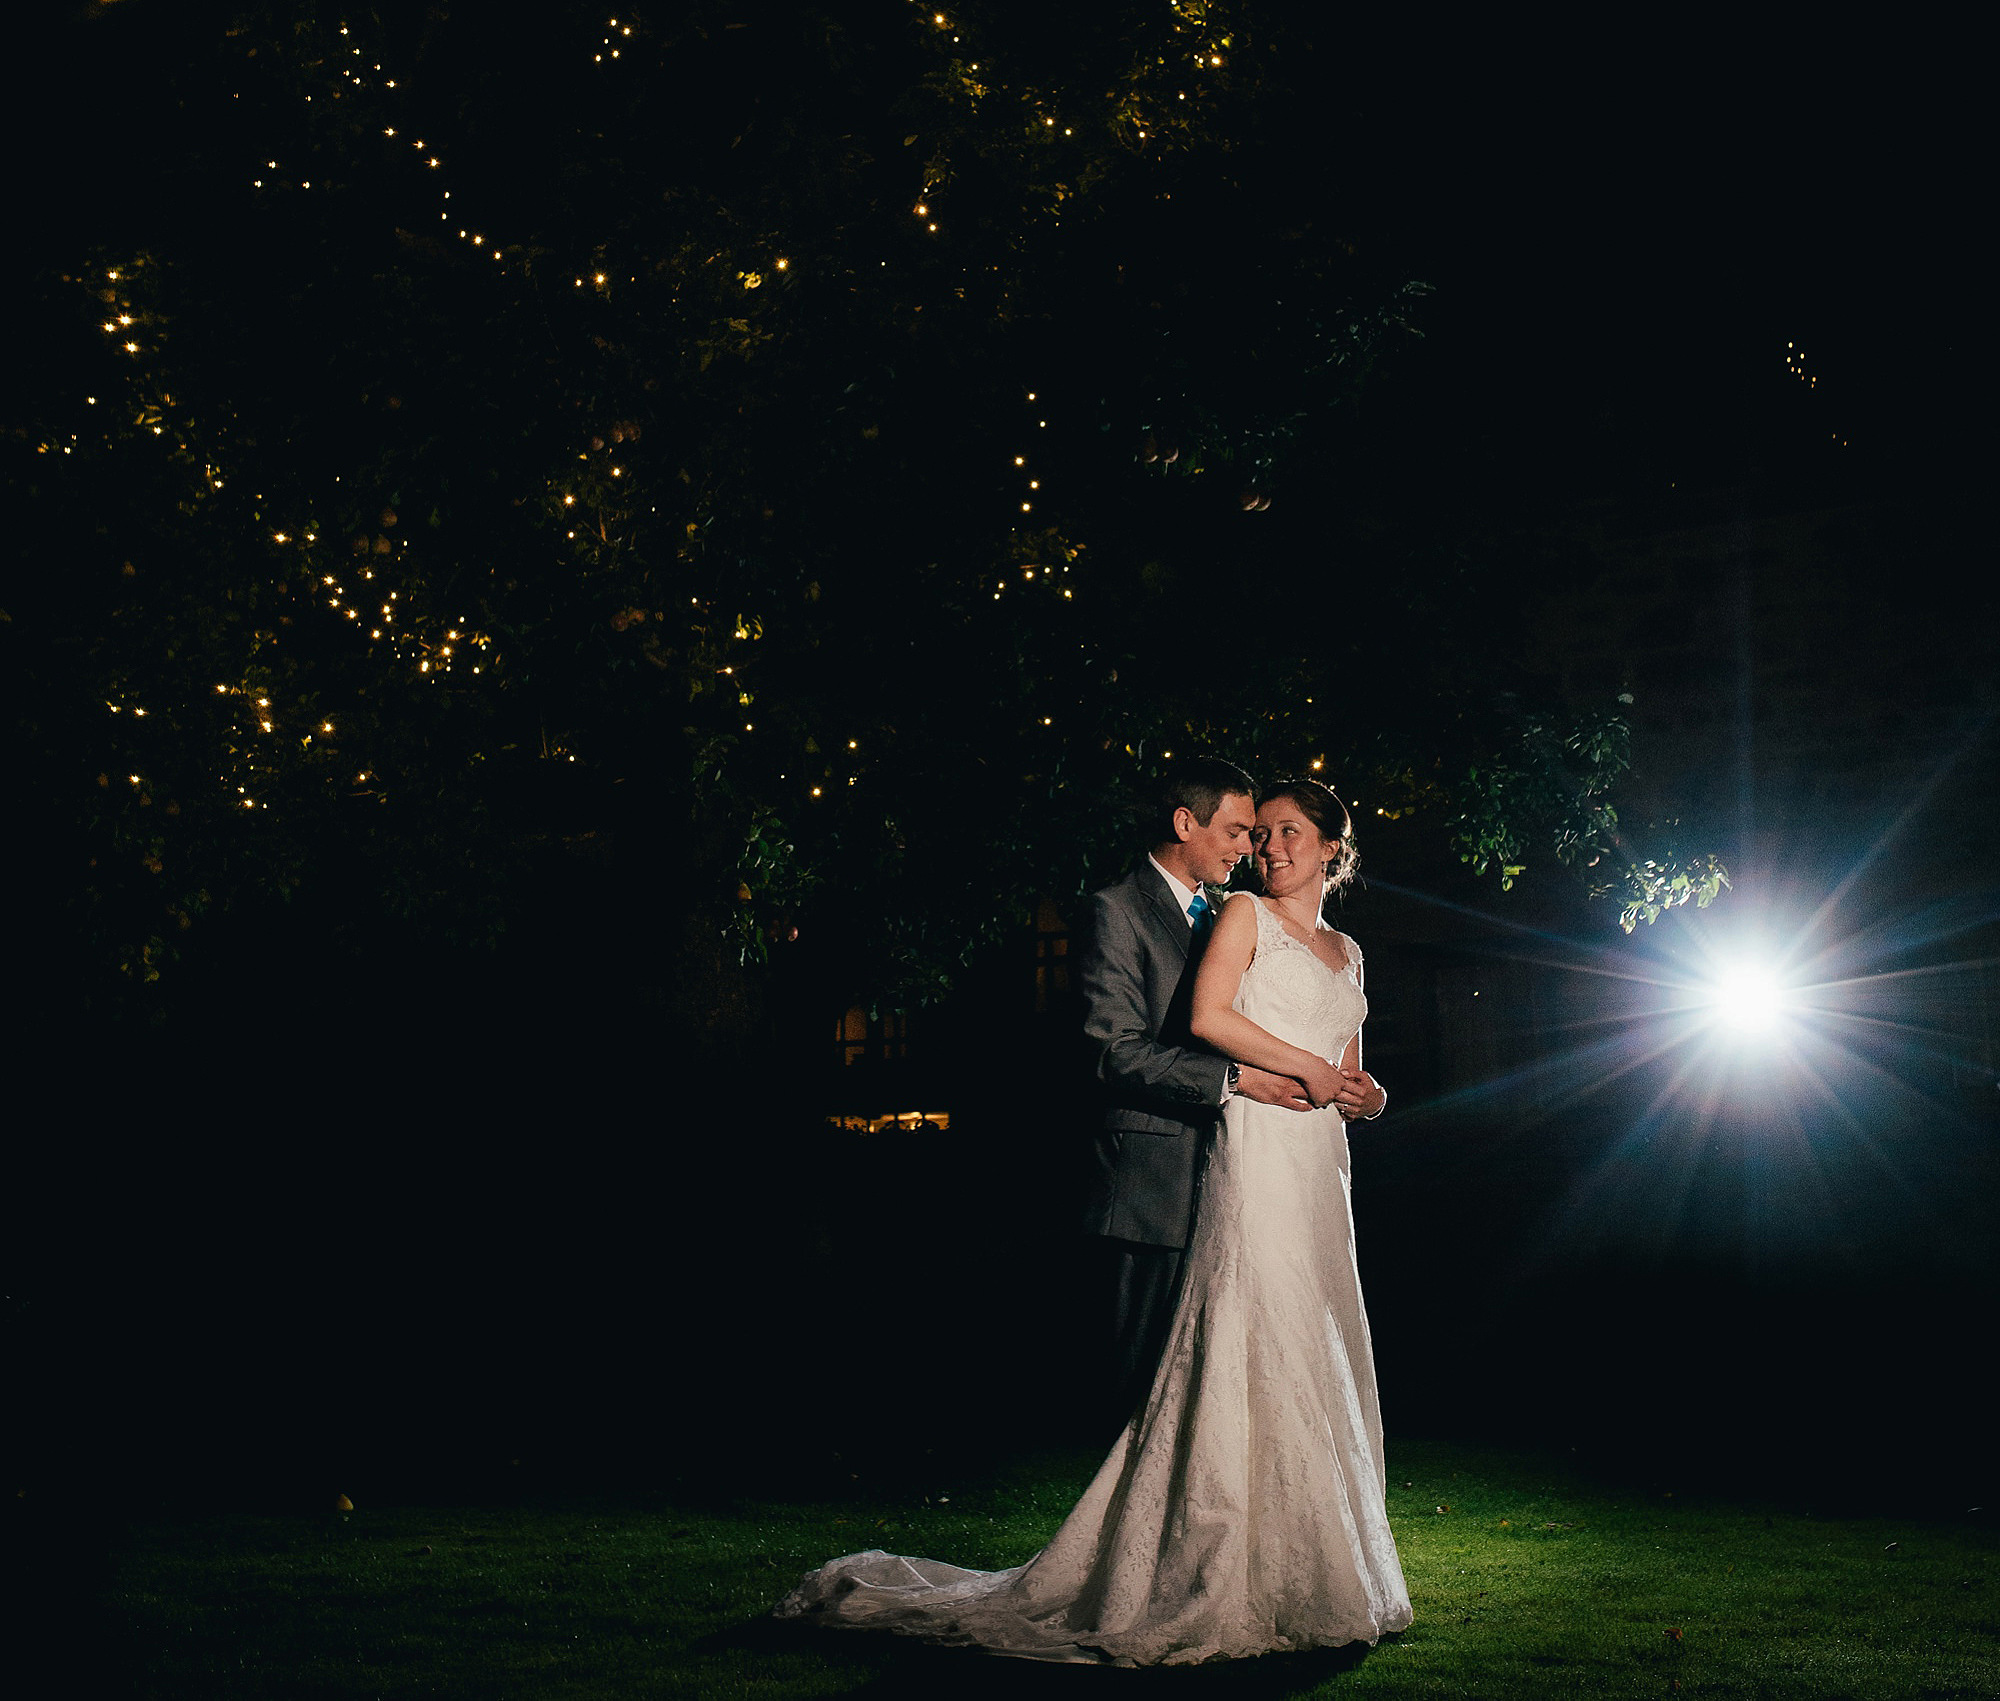 romantic bride and groom portrait at night